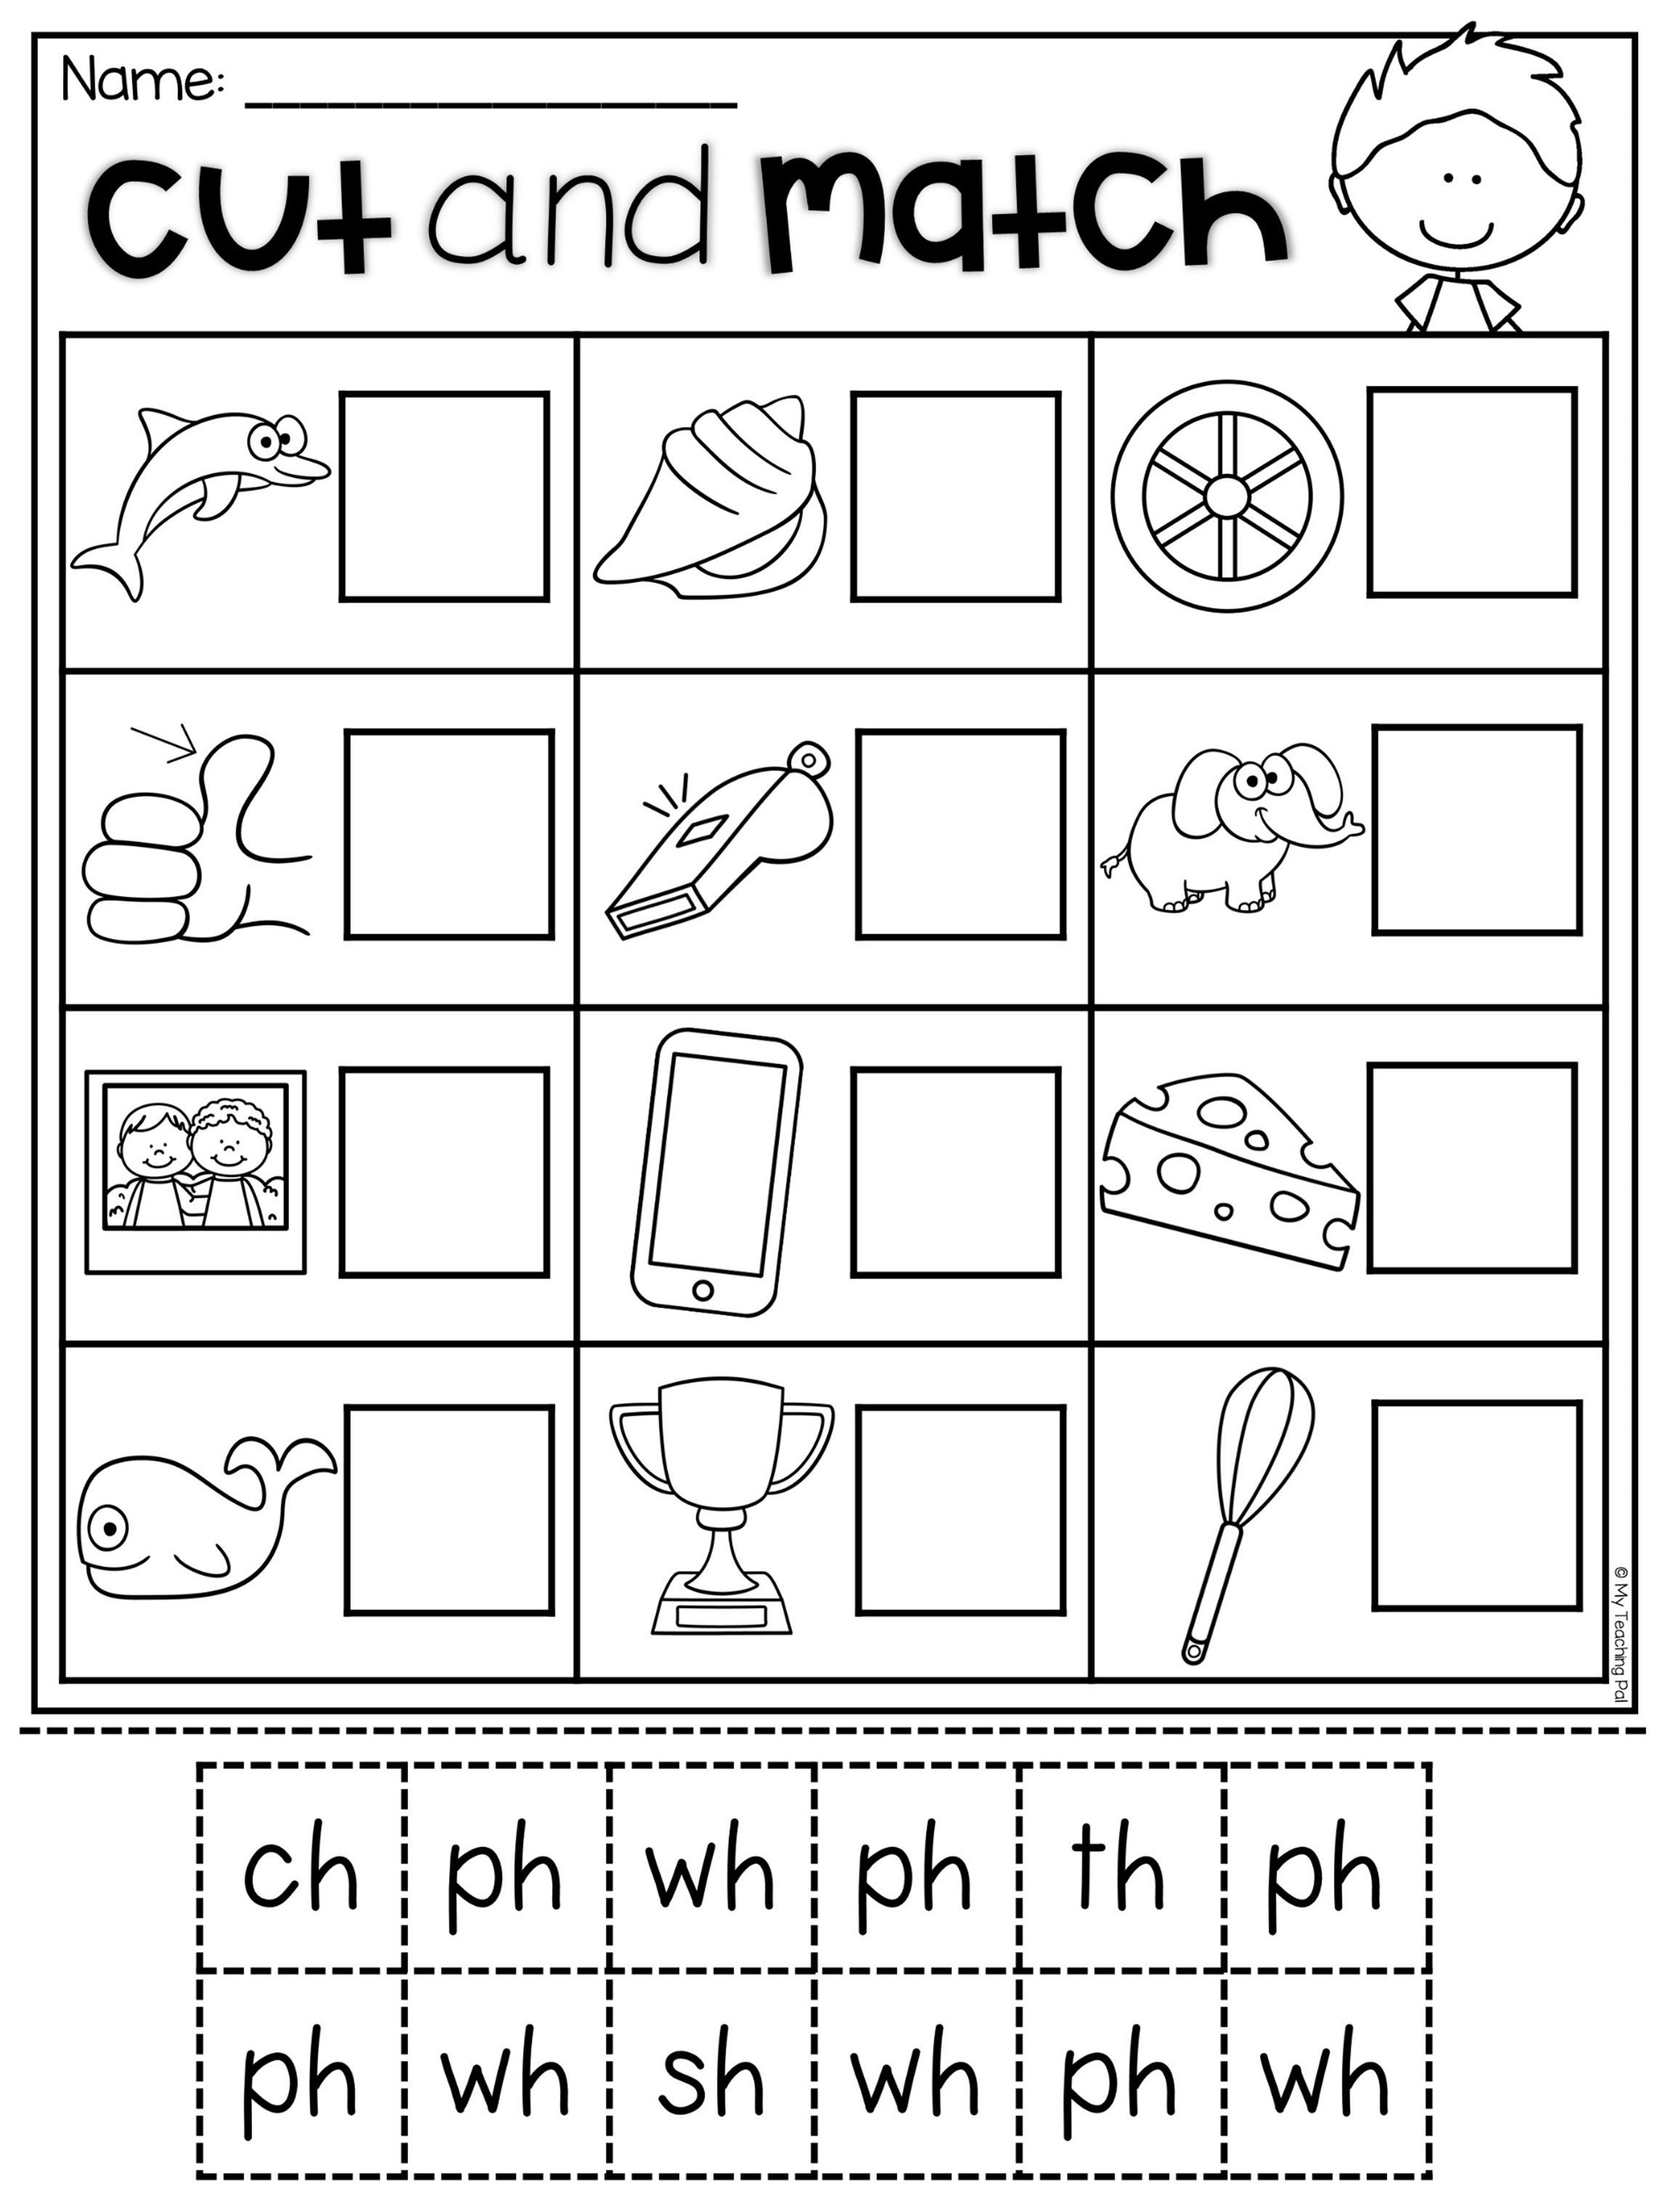 Digraph Worksheet Packet - Ch, Sh, Th, Wh, Ph | Kindergarten | Digraphs Worksheets Free Printables